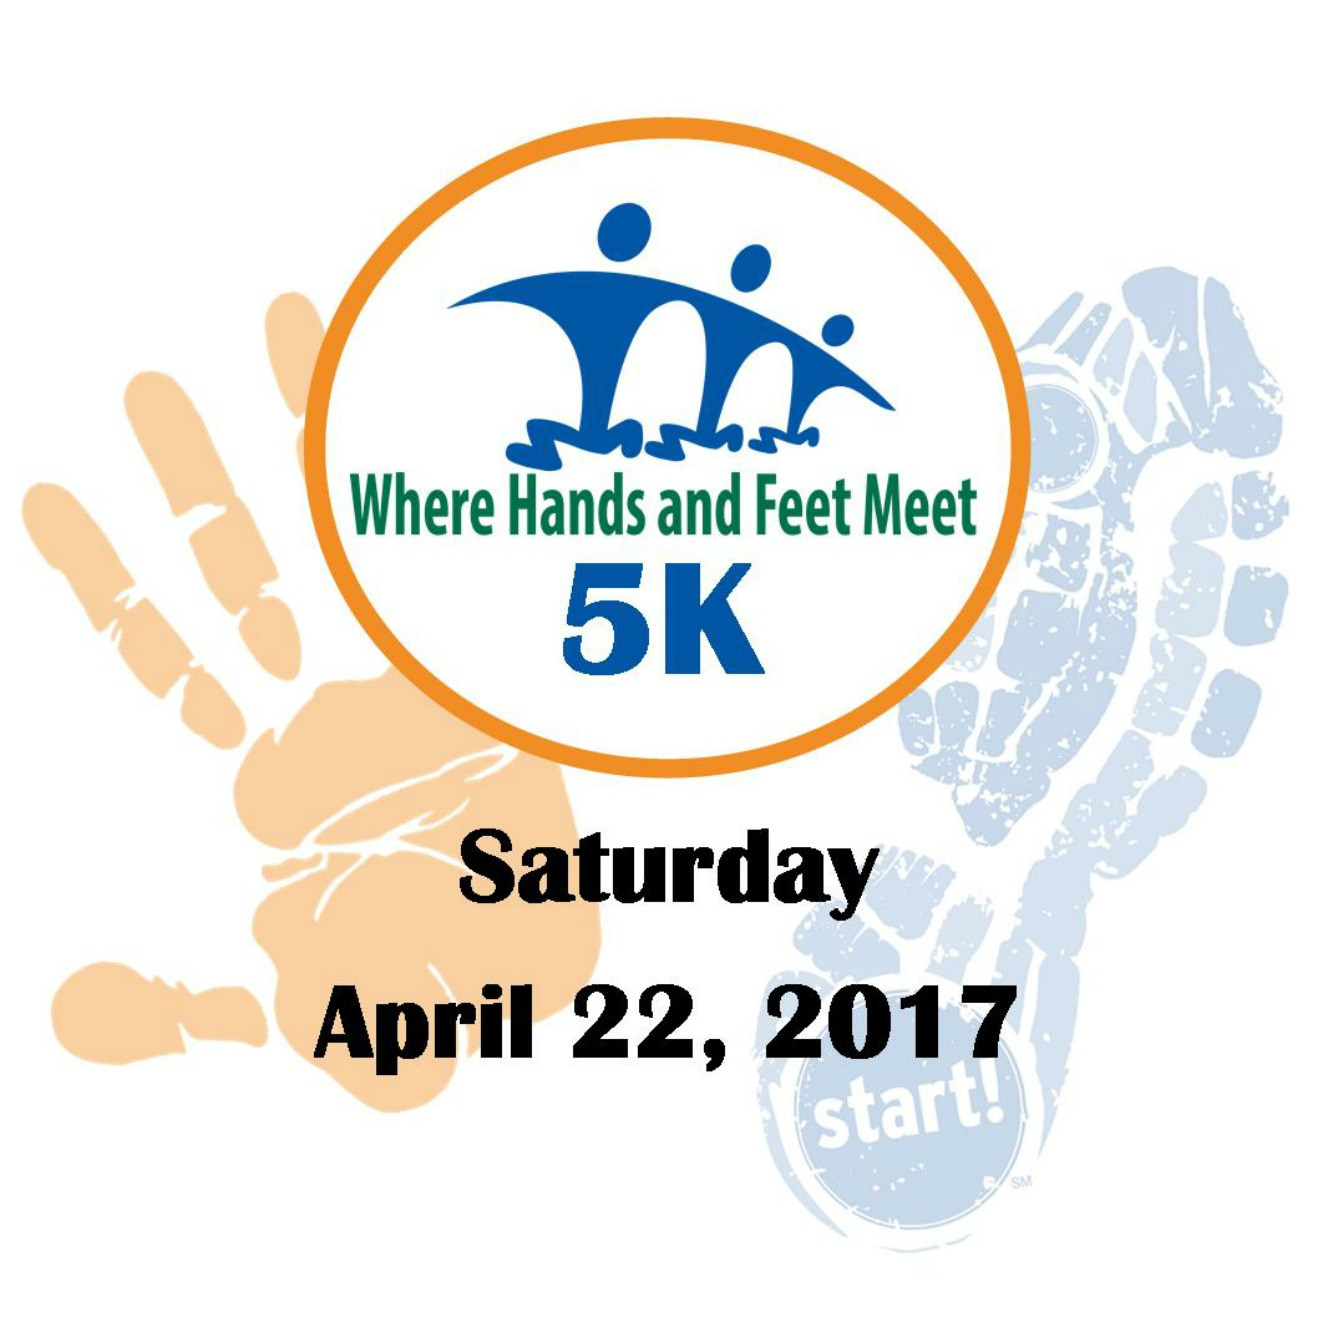 Where Hands and Feet Meet 5K Run